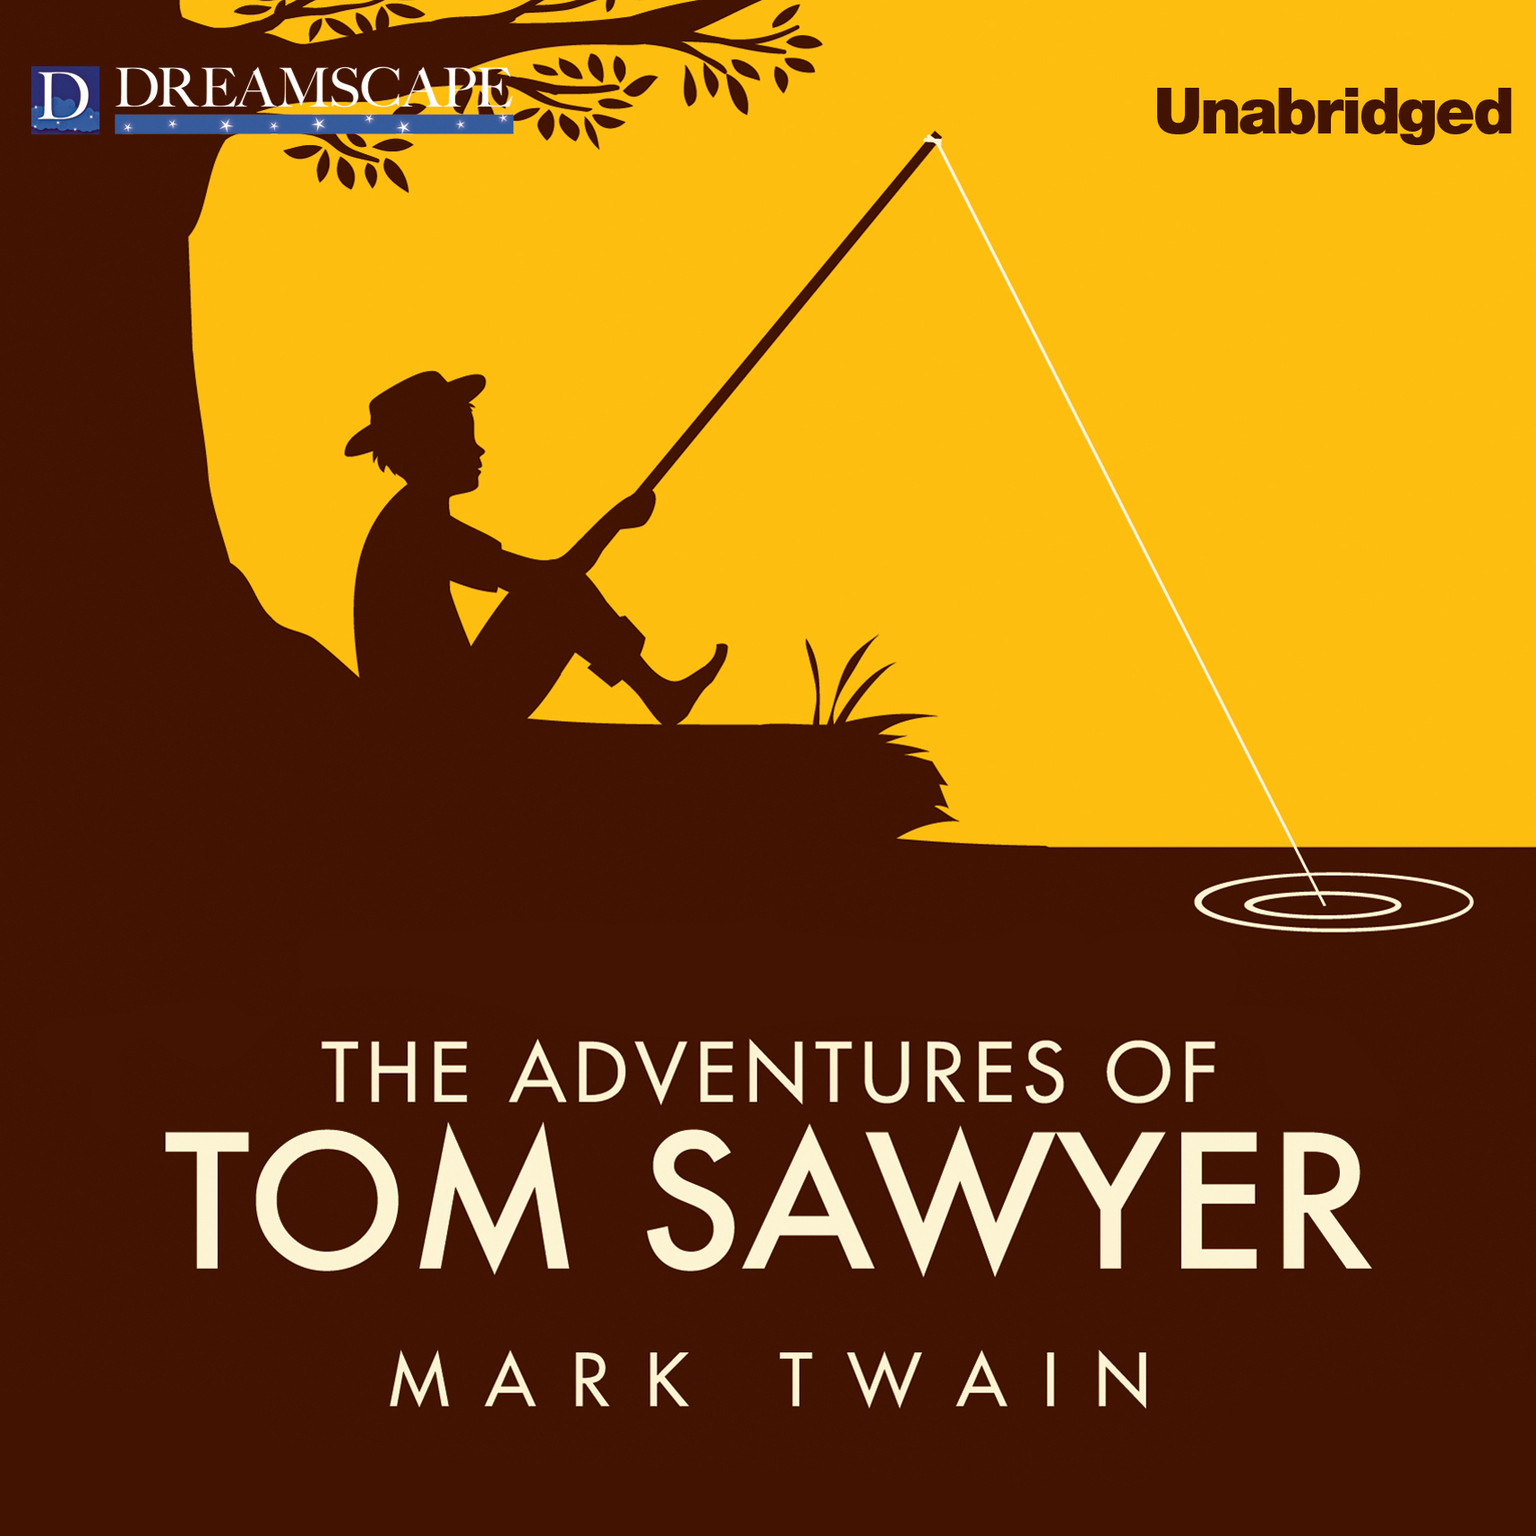 tom sawyer book report summary